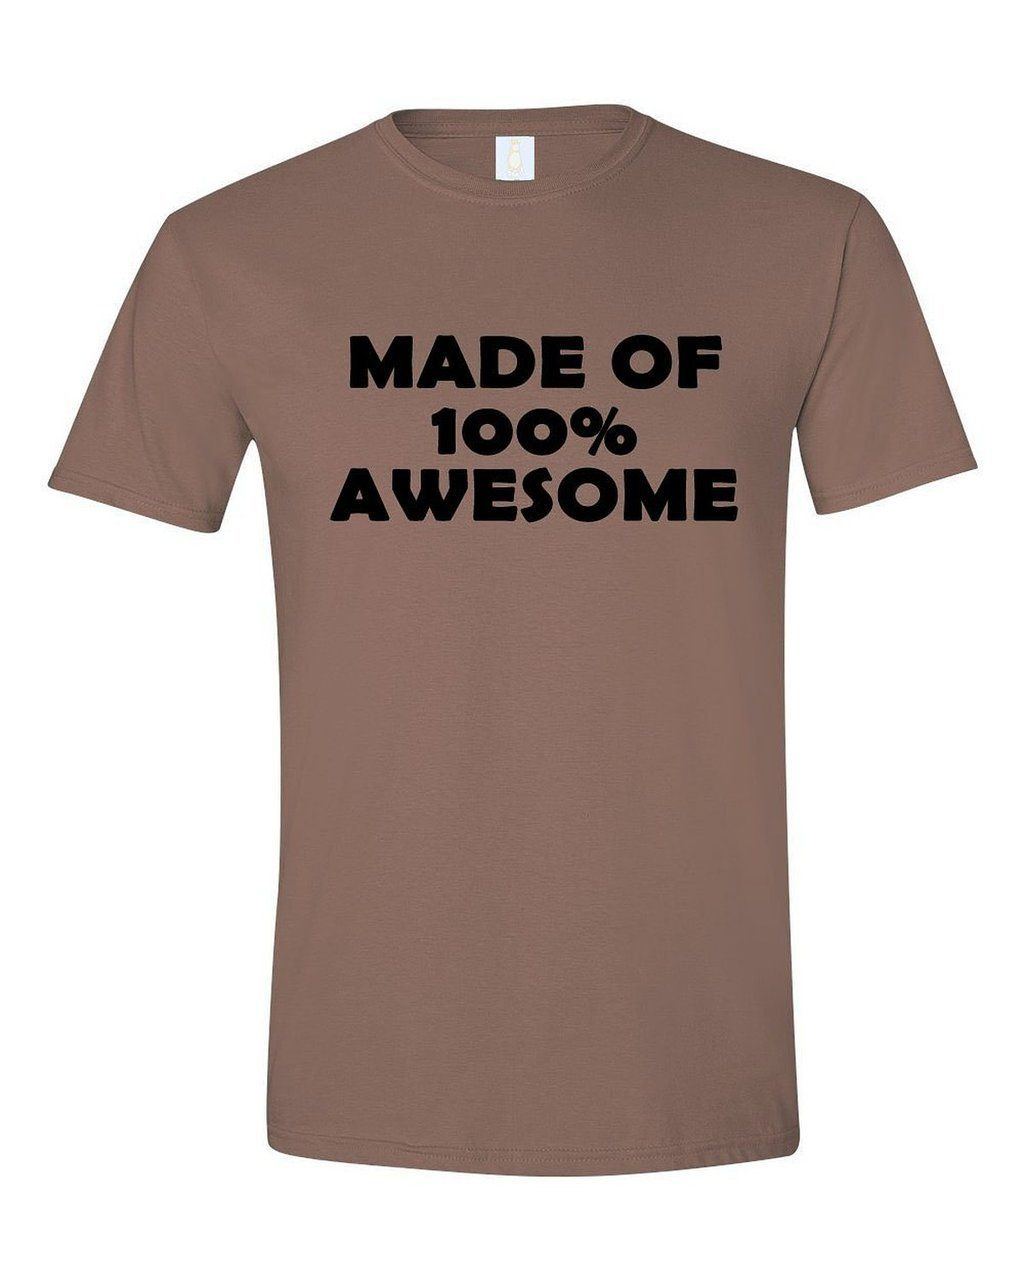 Apericots - Made of 100% Awesome Adult Design Tshirt, $13.99 (http://www.apericots.com/made-of-100-awesome-adult-design-tshirt/)